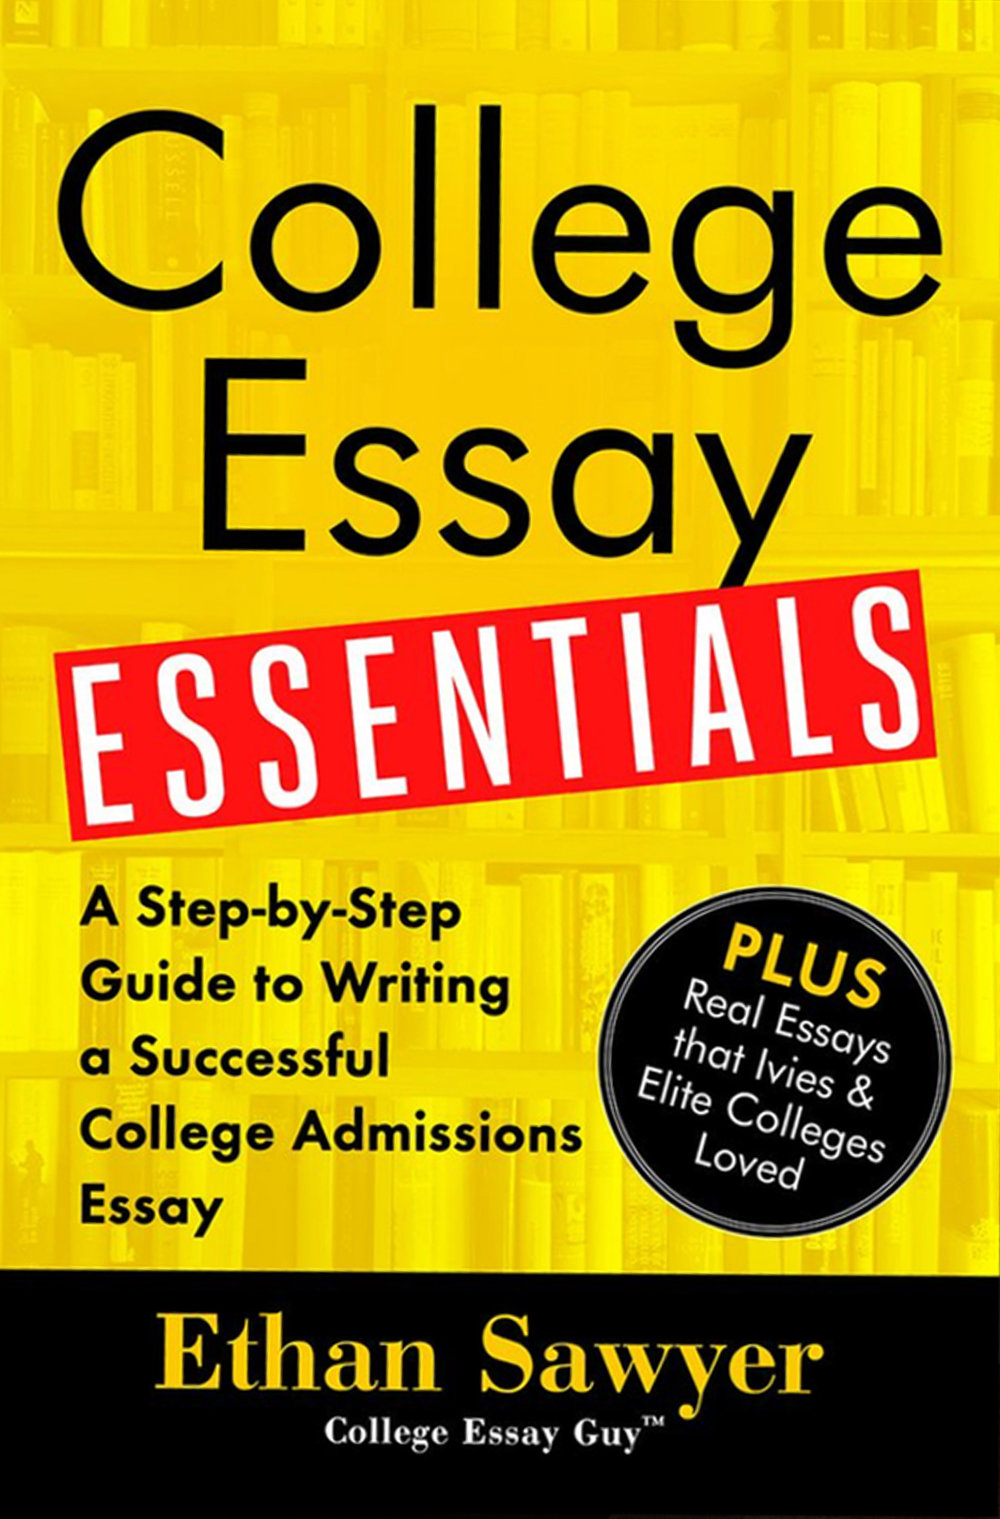 how to write a why us essay part 1 college essay guy get order the new book college essay essentials